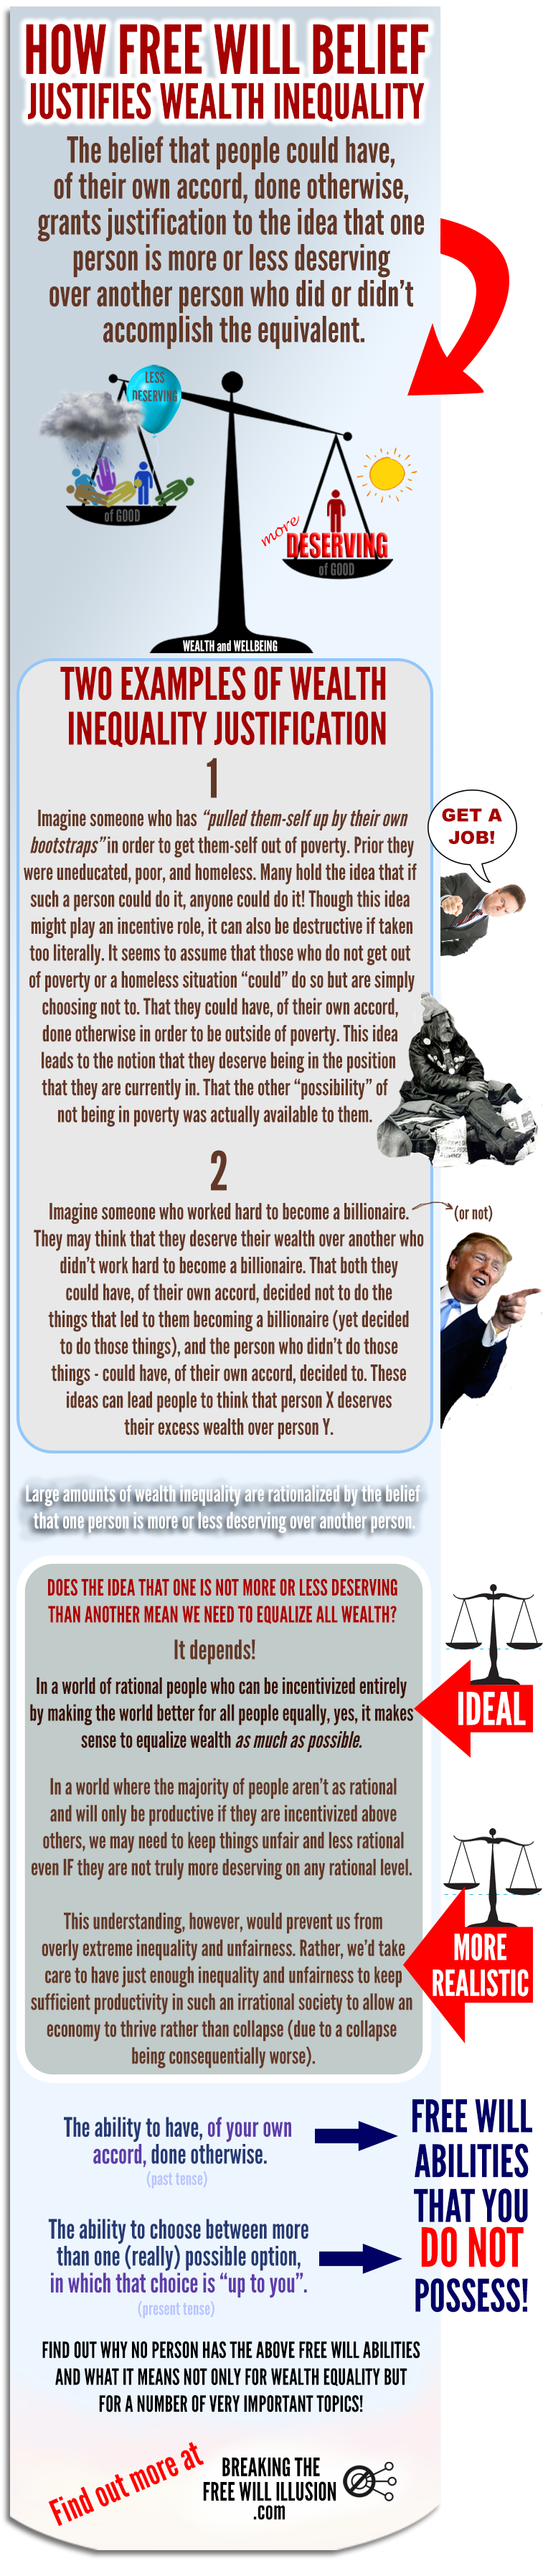 free will vs determinism Do we really have free will today hank explores possible answers to that question, explaining theories like libertarian free will and it's counterpoint, har.